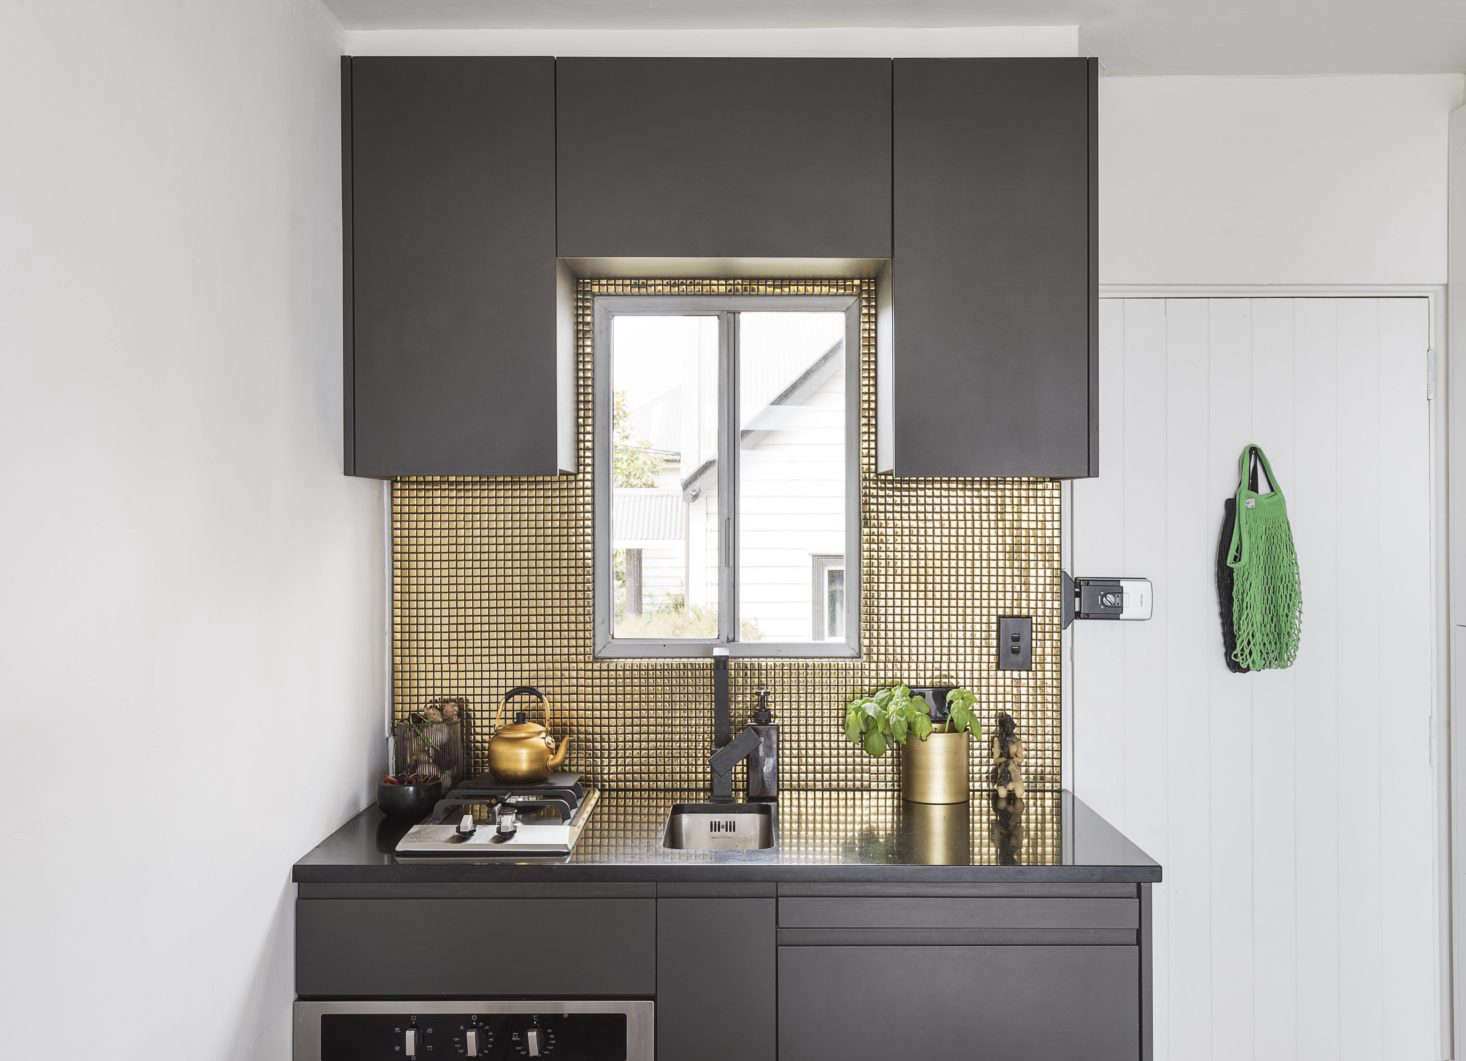 The new kitchenette is tiny but bold: Spath painted the cabinetry in Nero by Resene Paints; the tiles in the backsplash are from Tile Space in Auckland. In the spirit of tiny but efficient kitchens, Spath chose a small-space sink and range (see  Easy Pieces: Best Appliances for Small Kitchens).